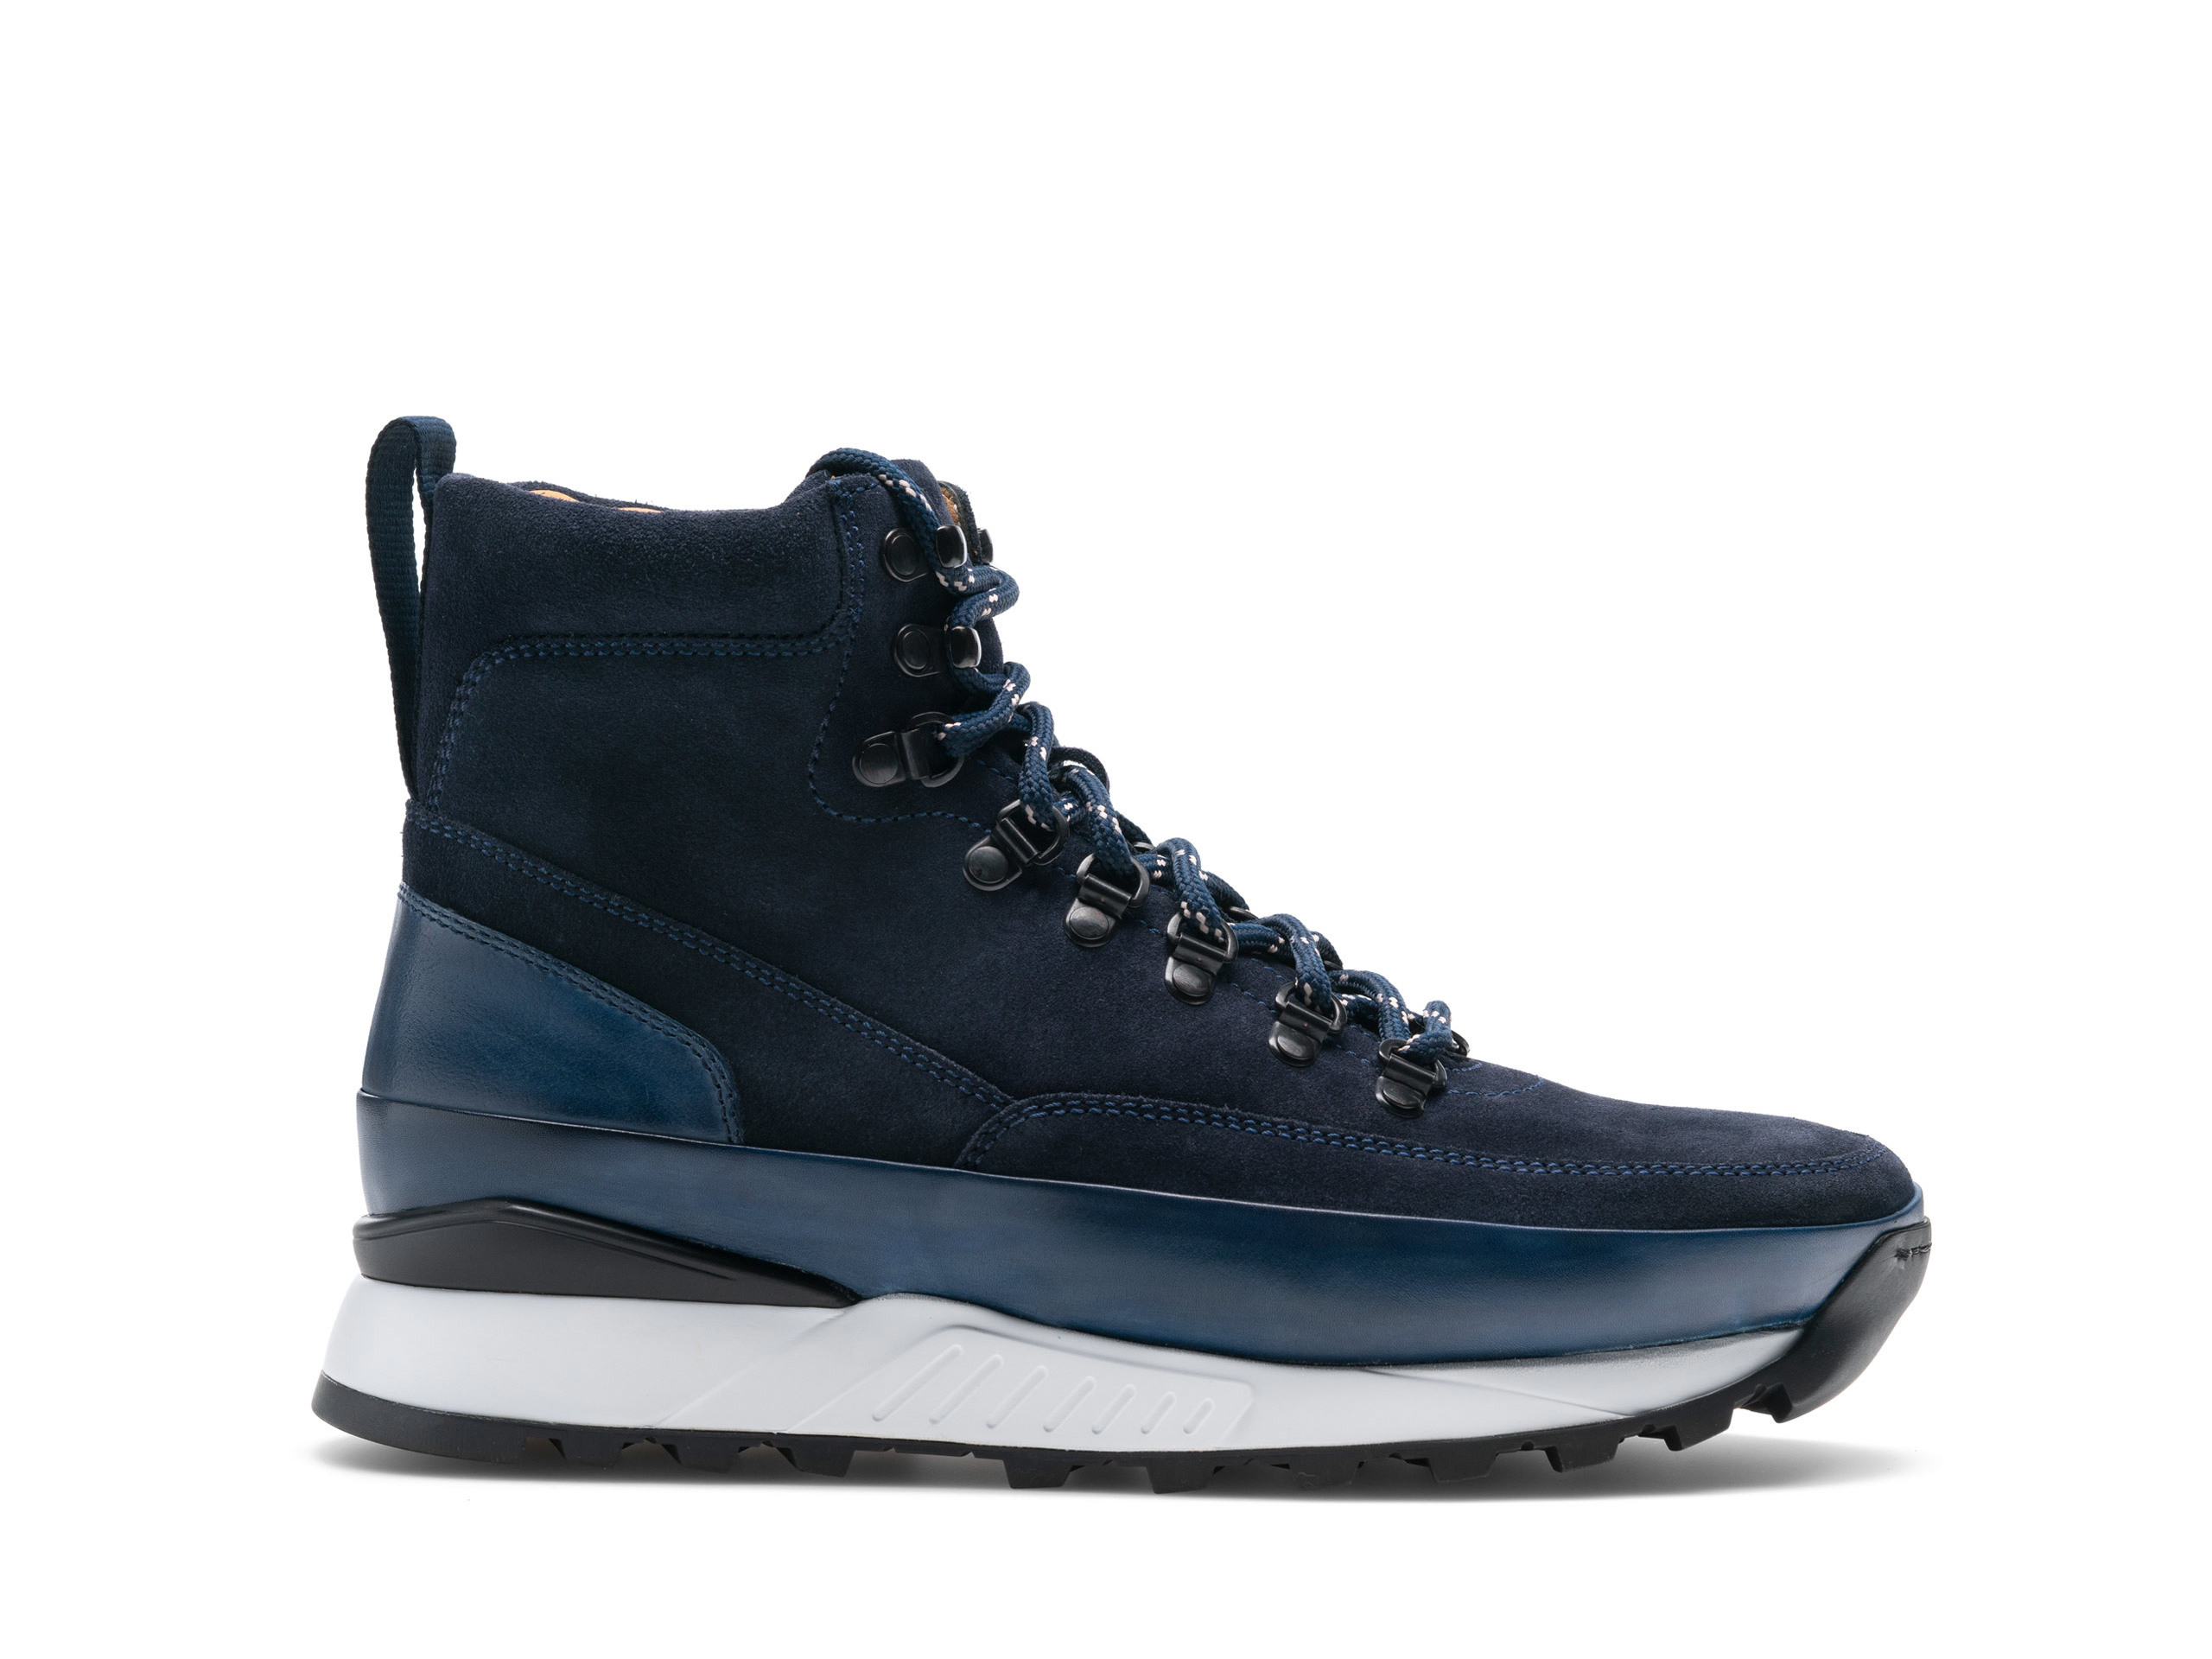 Side view of the Magnanni Bodhi II Navy Suede Boots